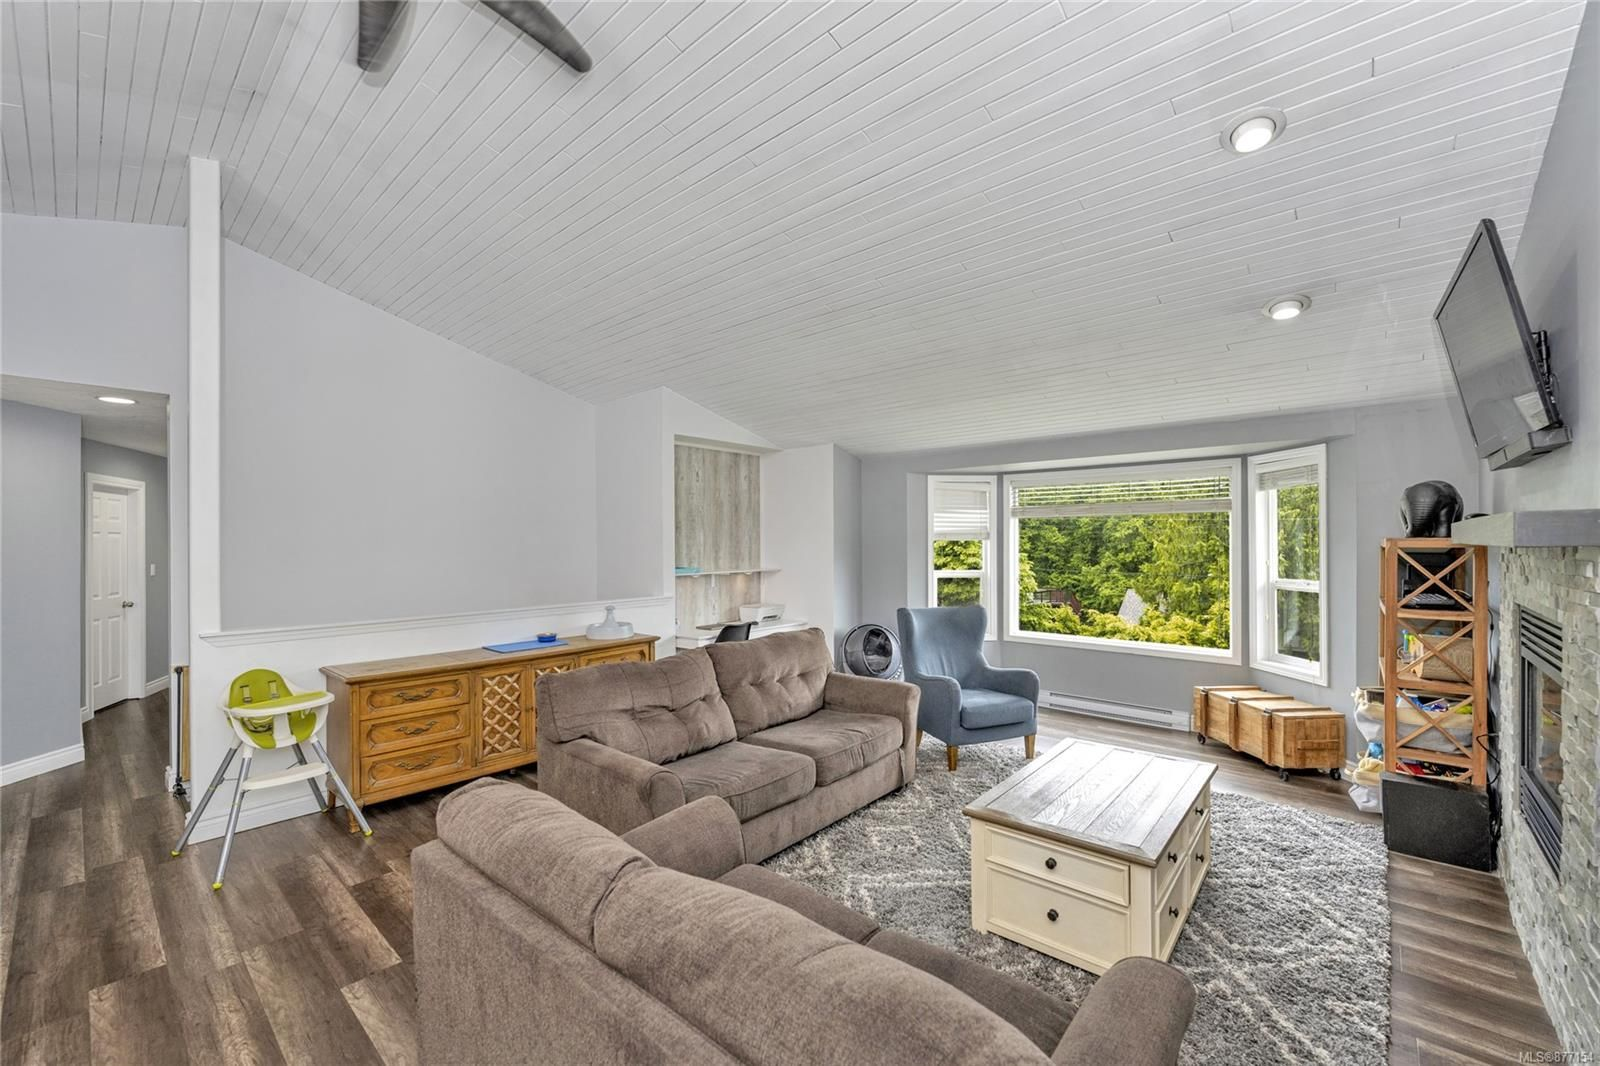 Photo 17: Photos: 2376 Terrace Rd in : ML Shawnigan House for sale (Malahat & Area)  : MLS®# 877154